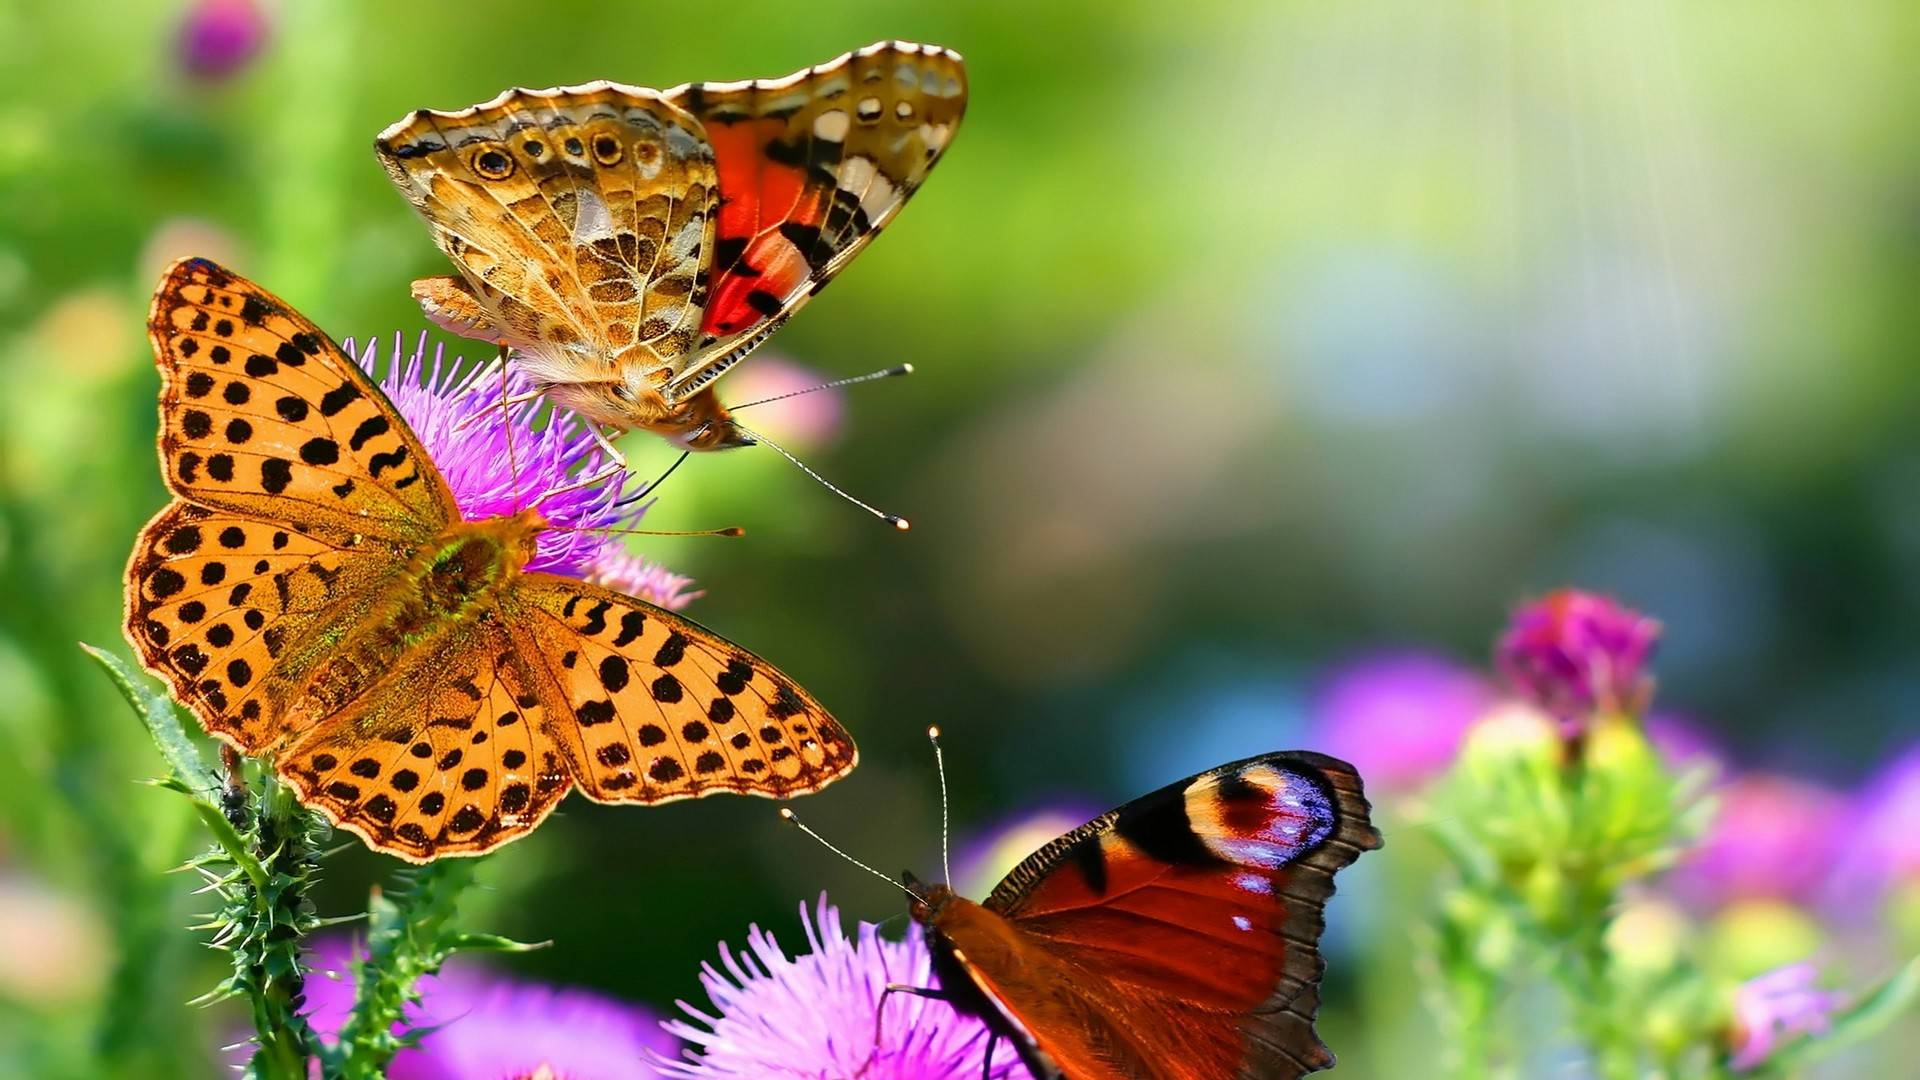 Beautiful Buterfly In The Nature Hd Wallpaper - Free Android ...